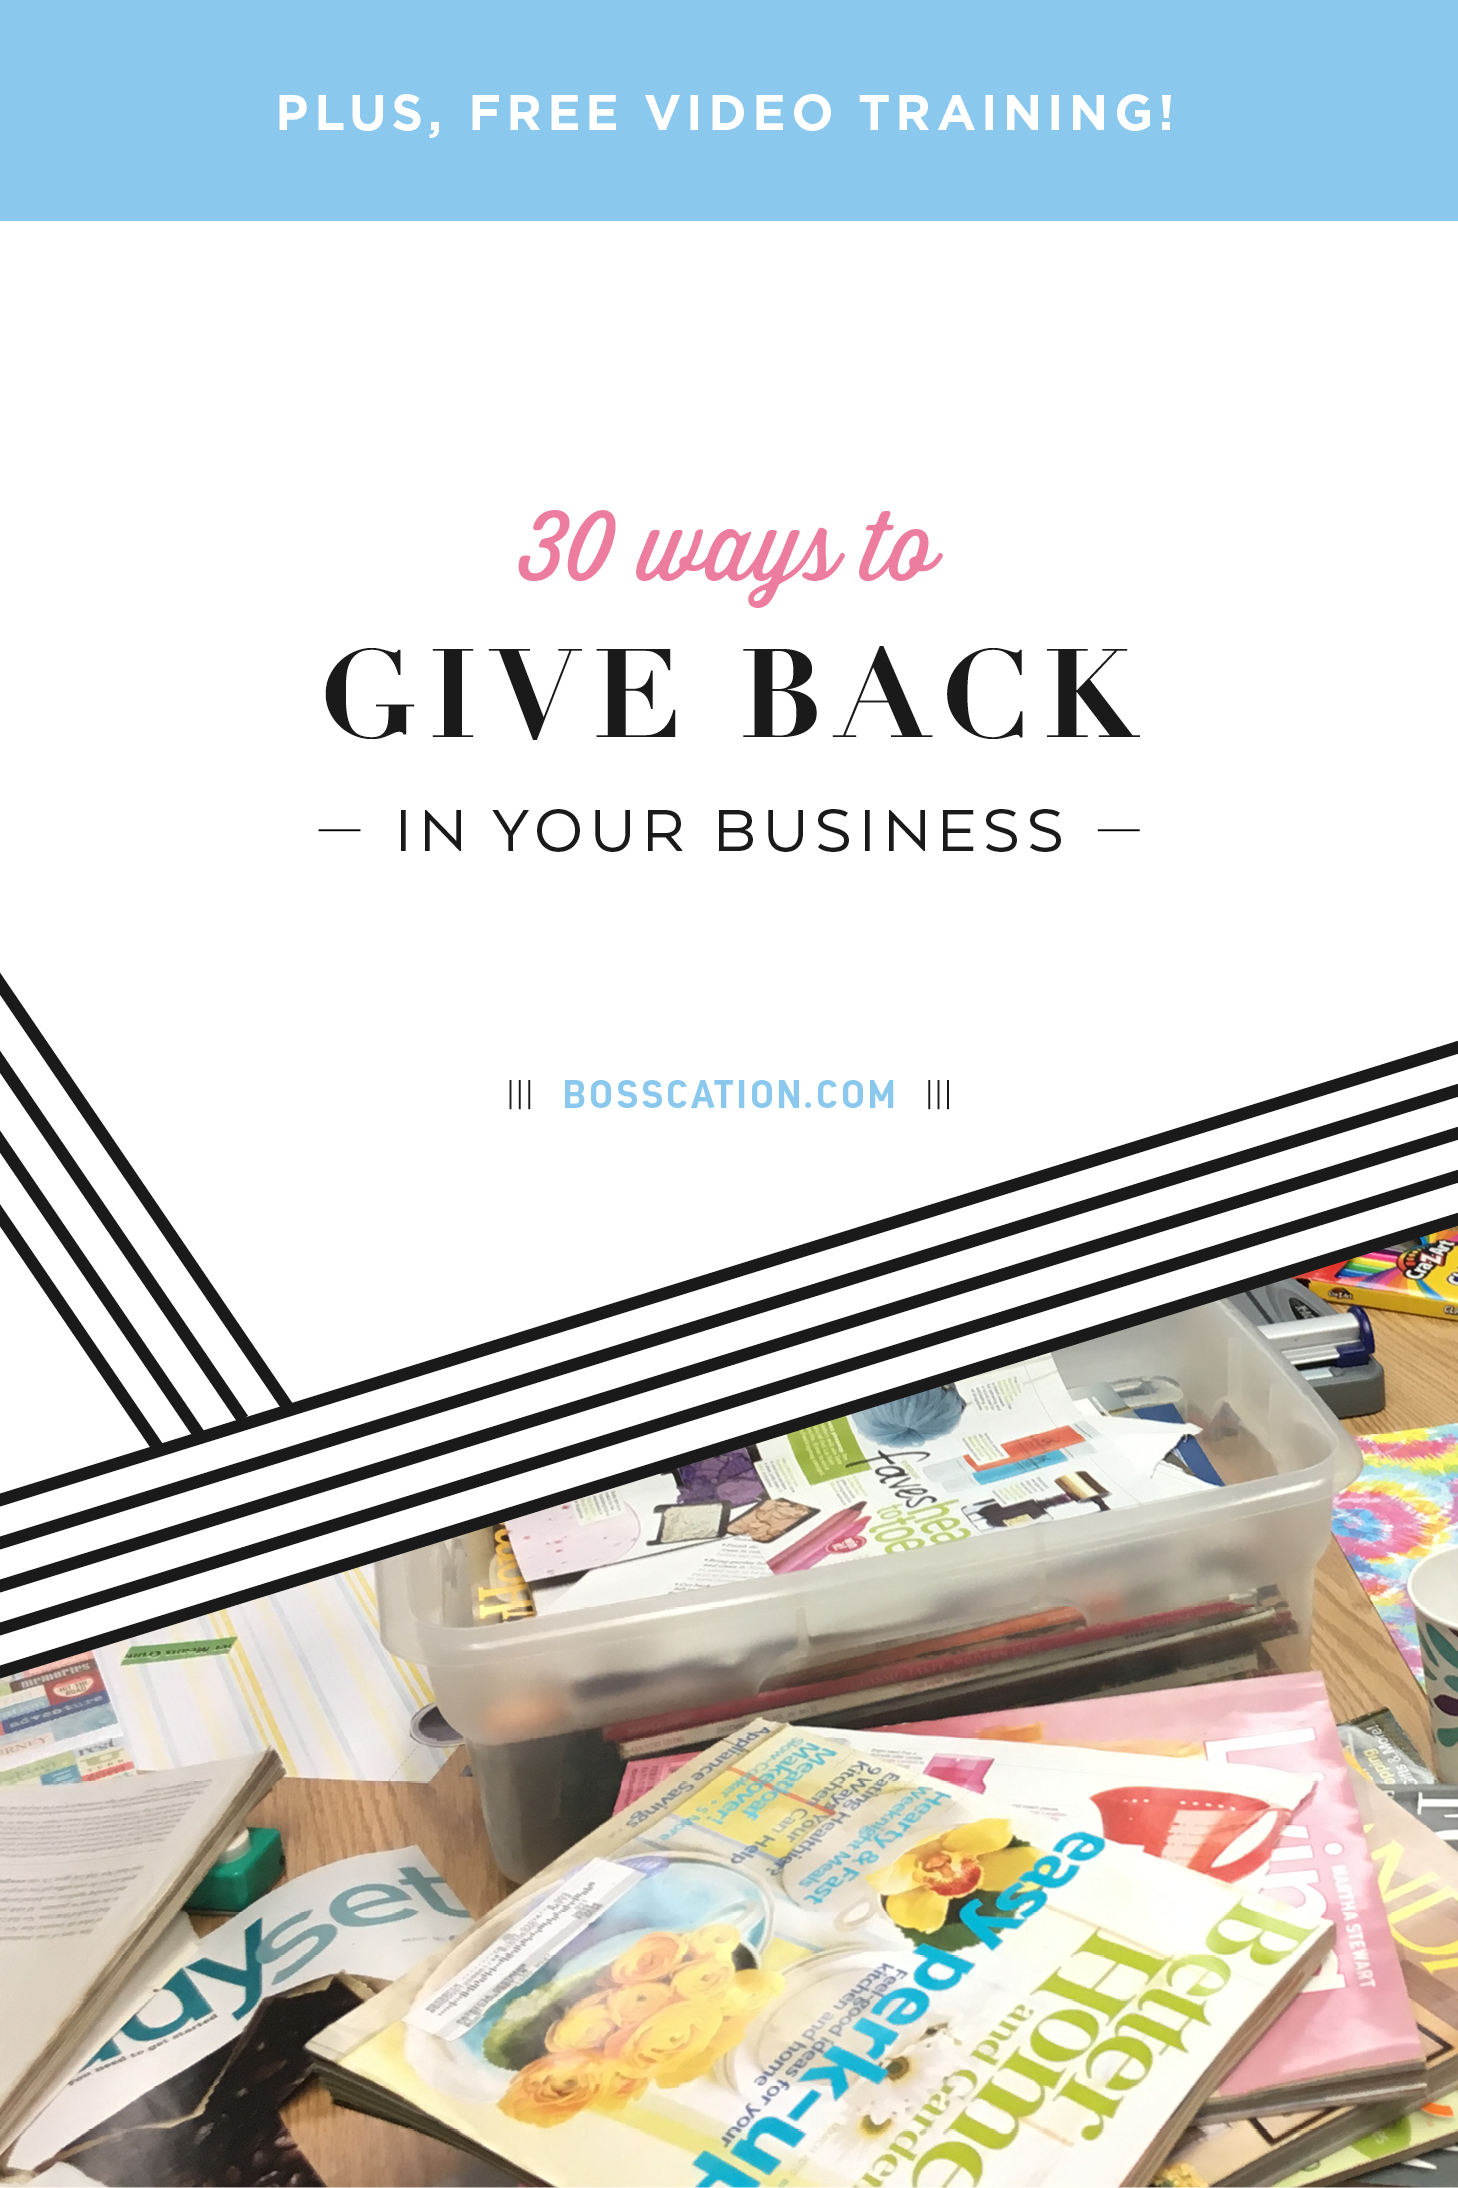 Bosscation_give-back_business